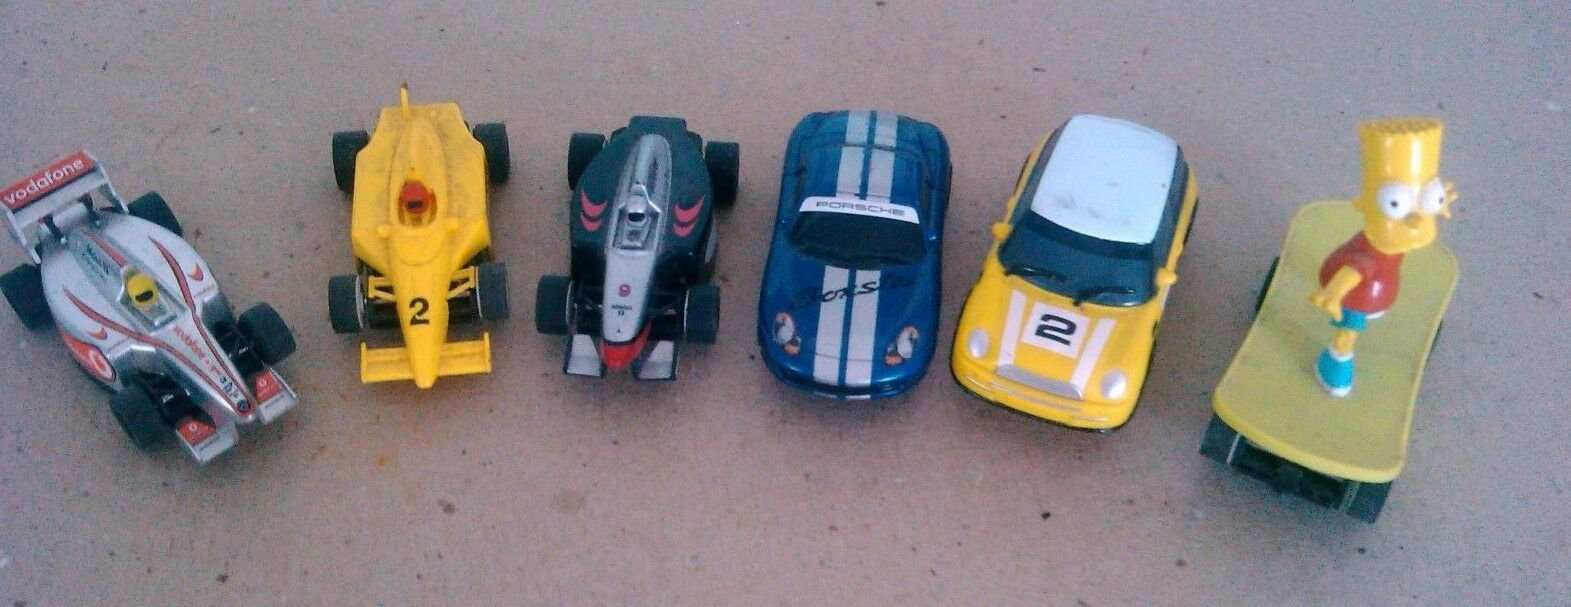 6 x micro scalextric cars